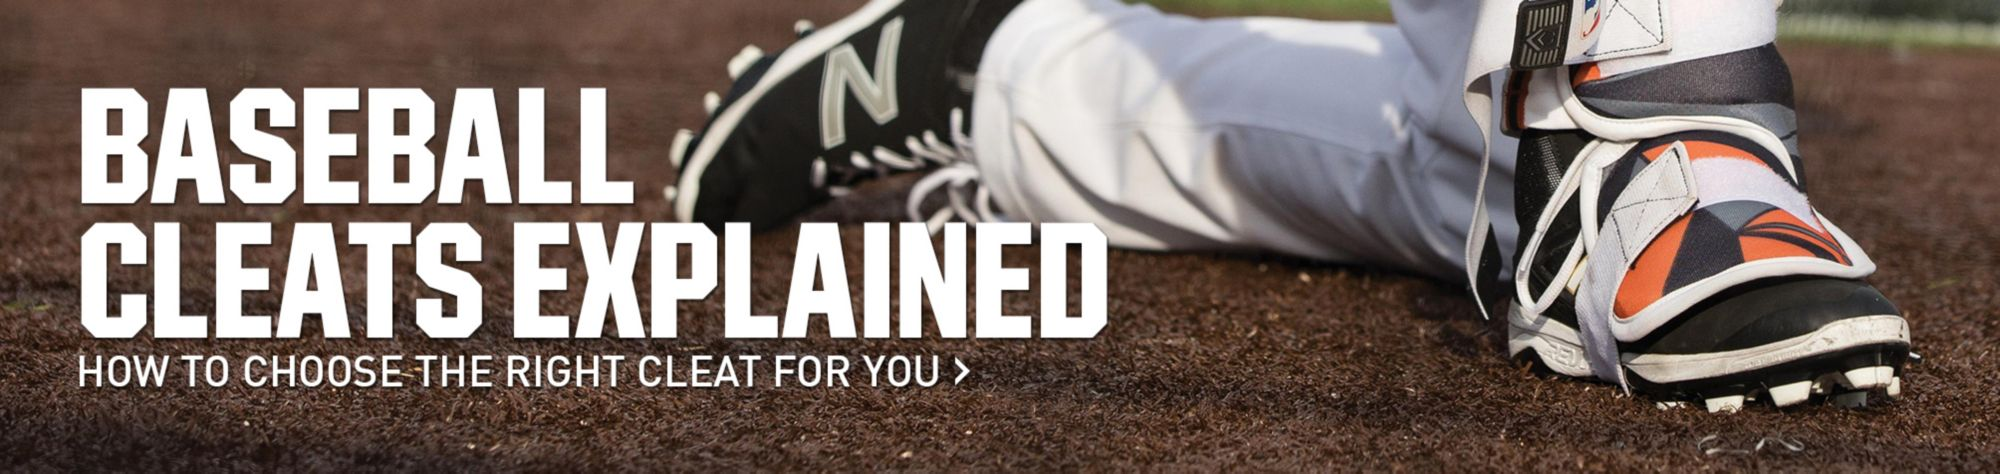 How to Buy Baseball Cleats